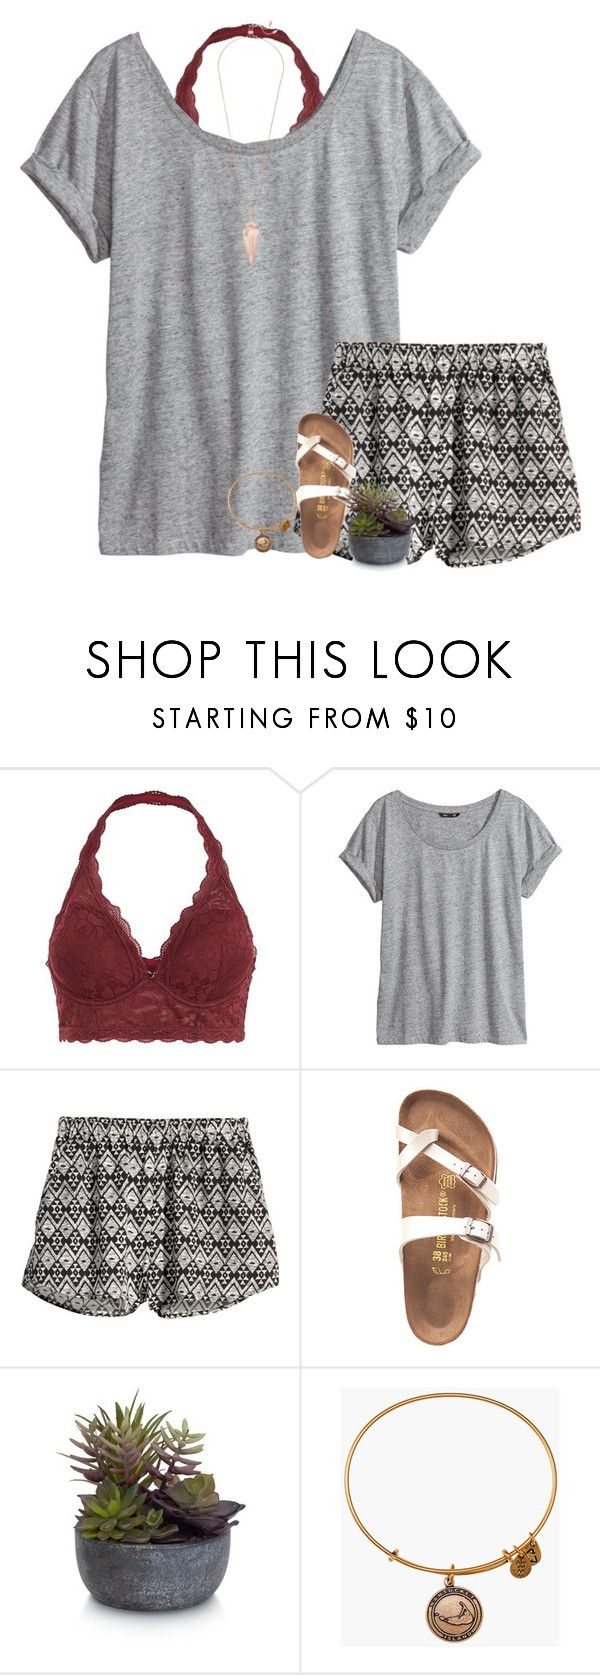 """Look for the girl with a broken smile"" by stripedprep ❤ liked on Polyvore featuring H&M, Birkenstock, Elements, Alex and Ani and Kendra Scott"